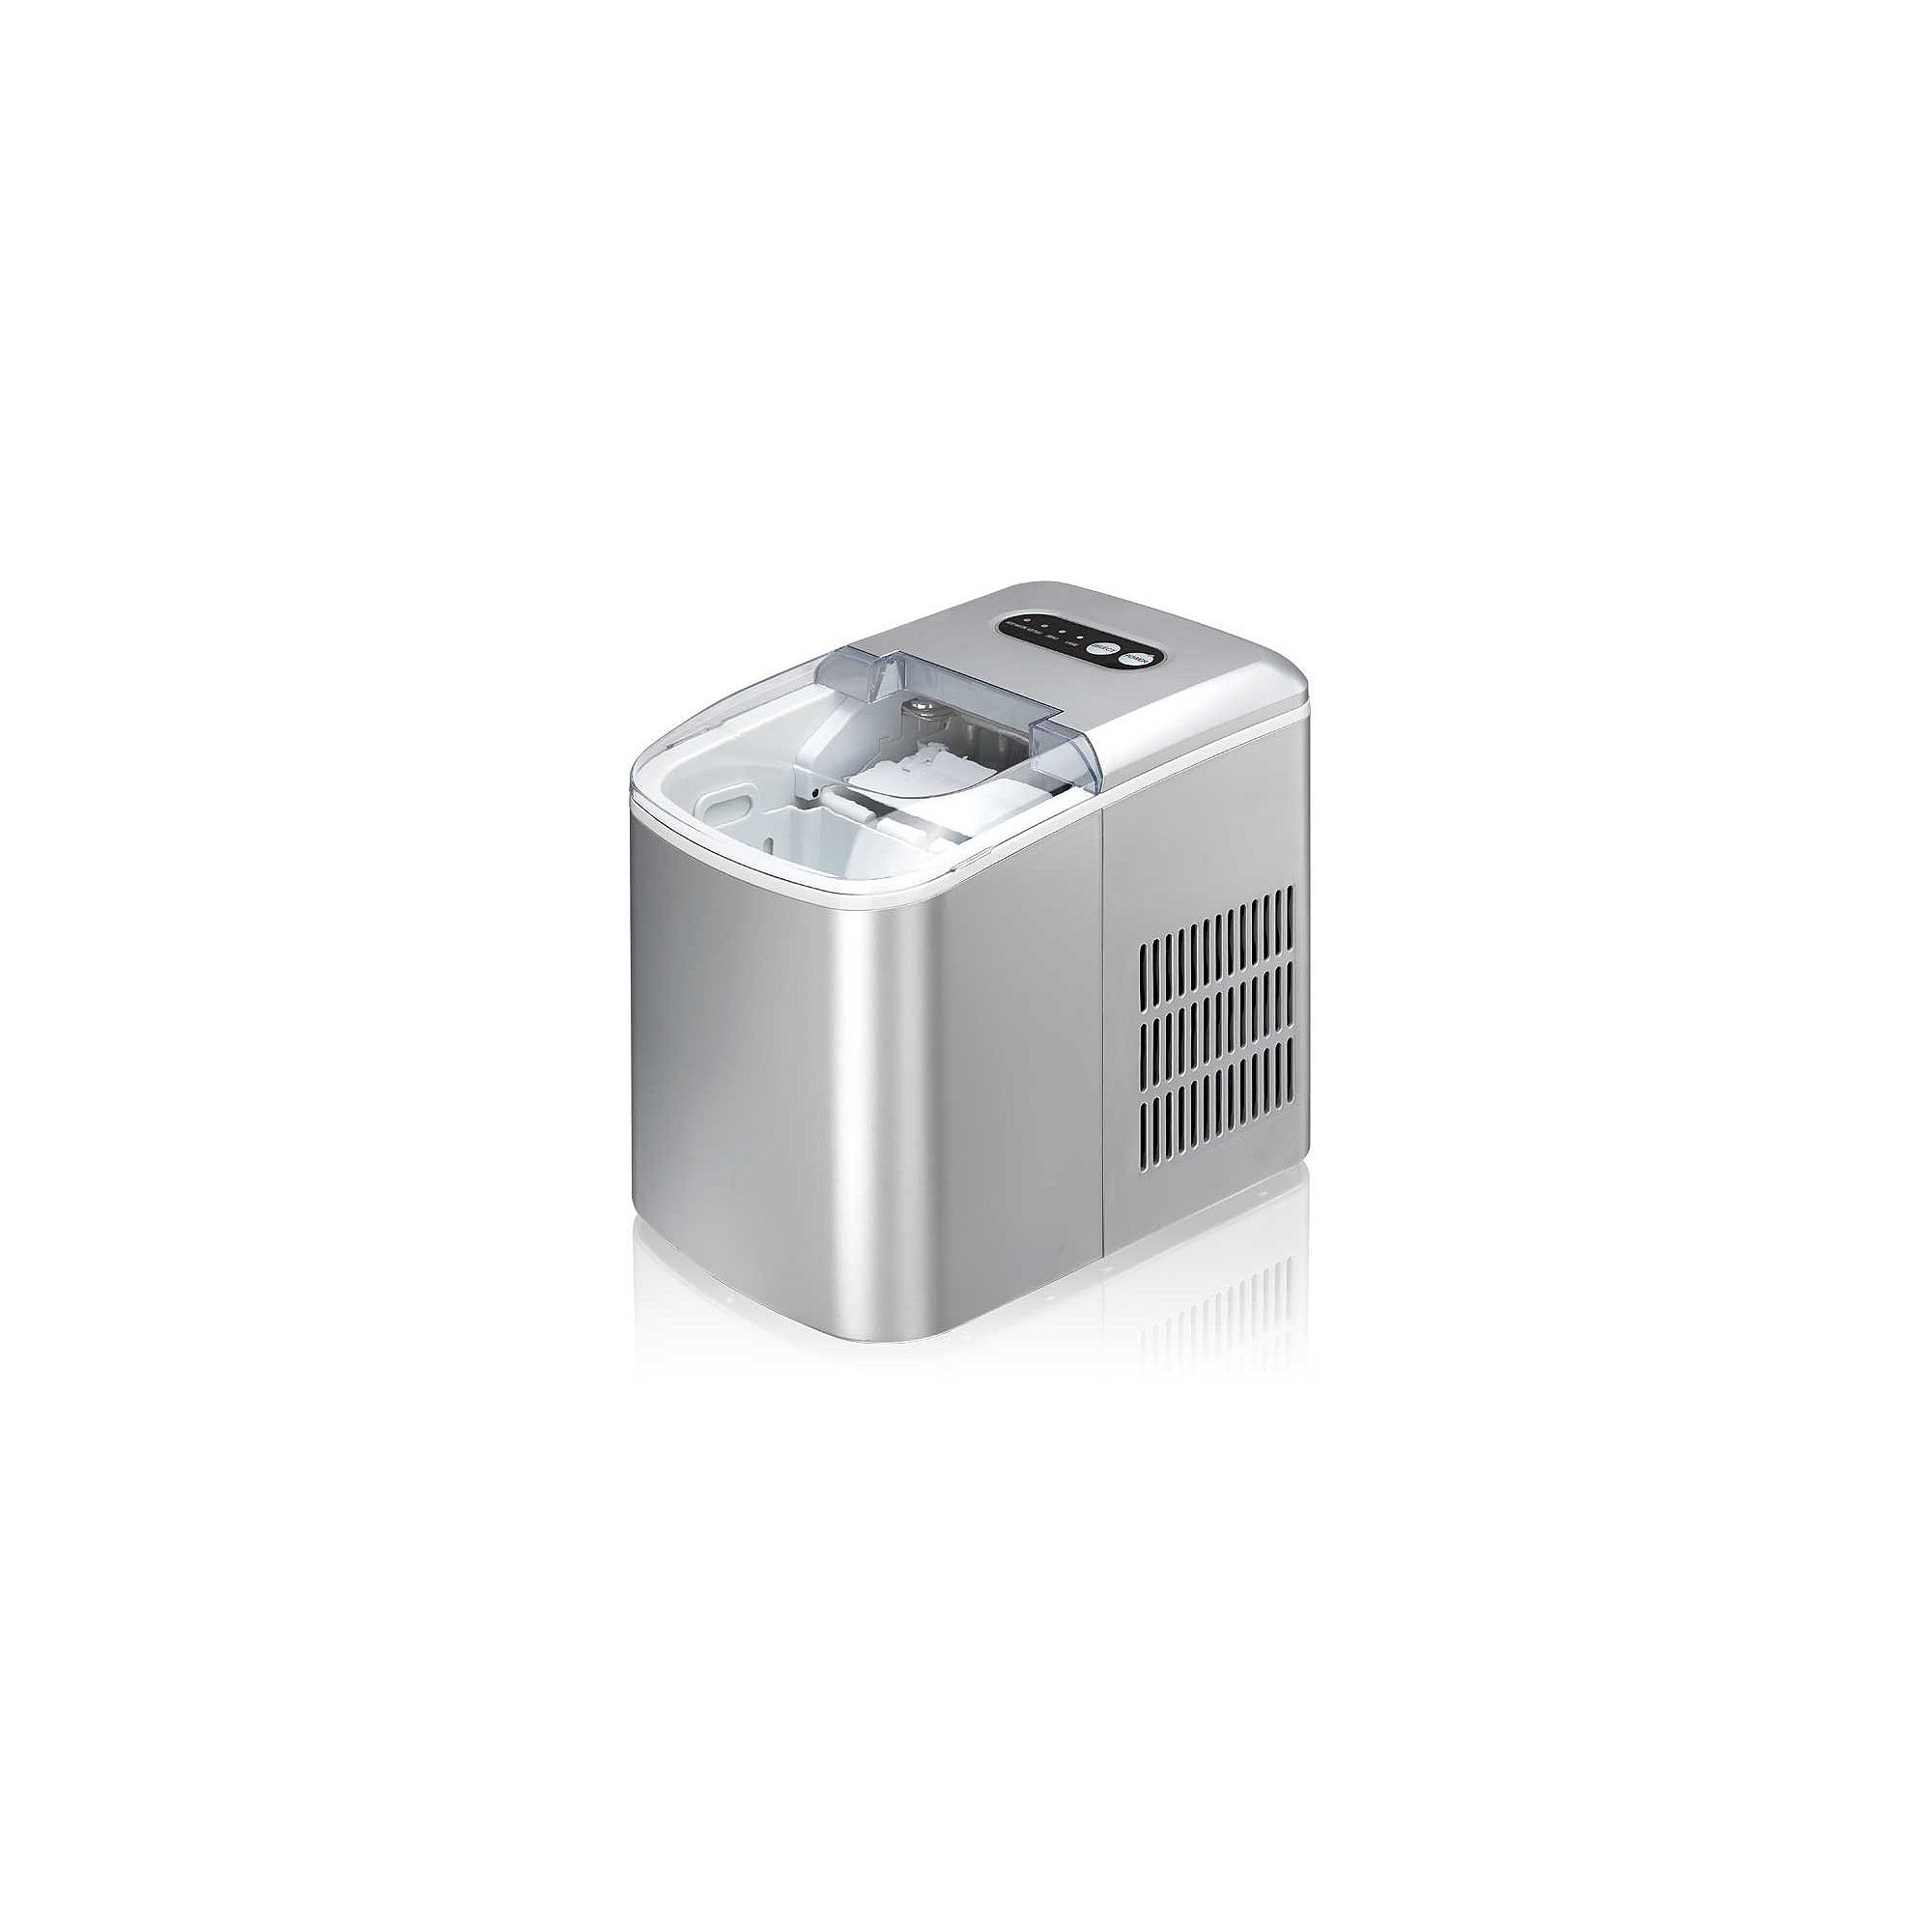 SPT IM-124S: Portable Ice Maker - Silver